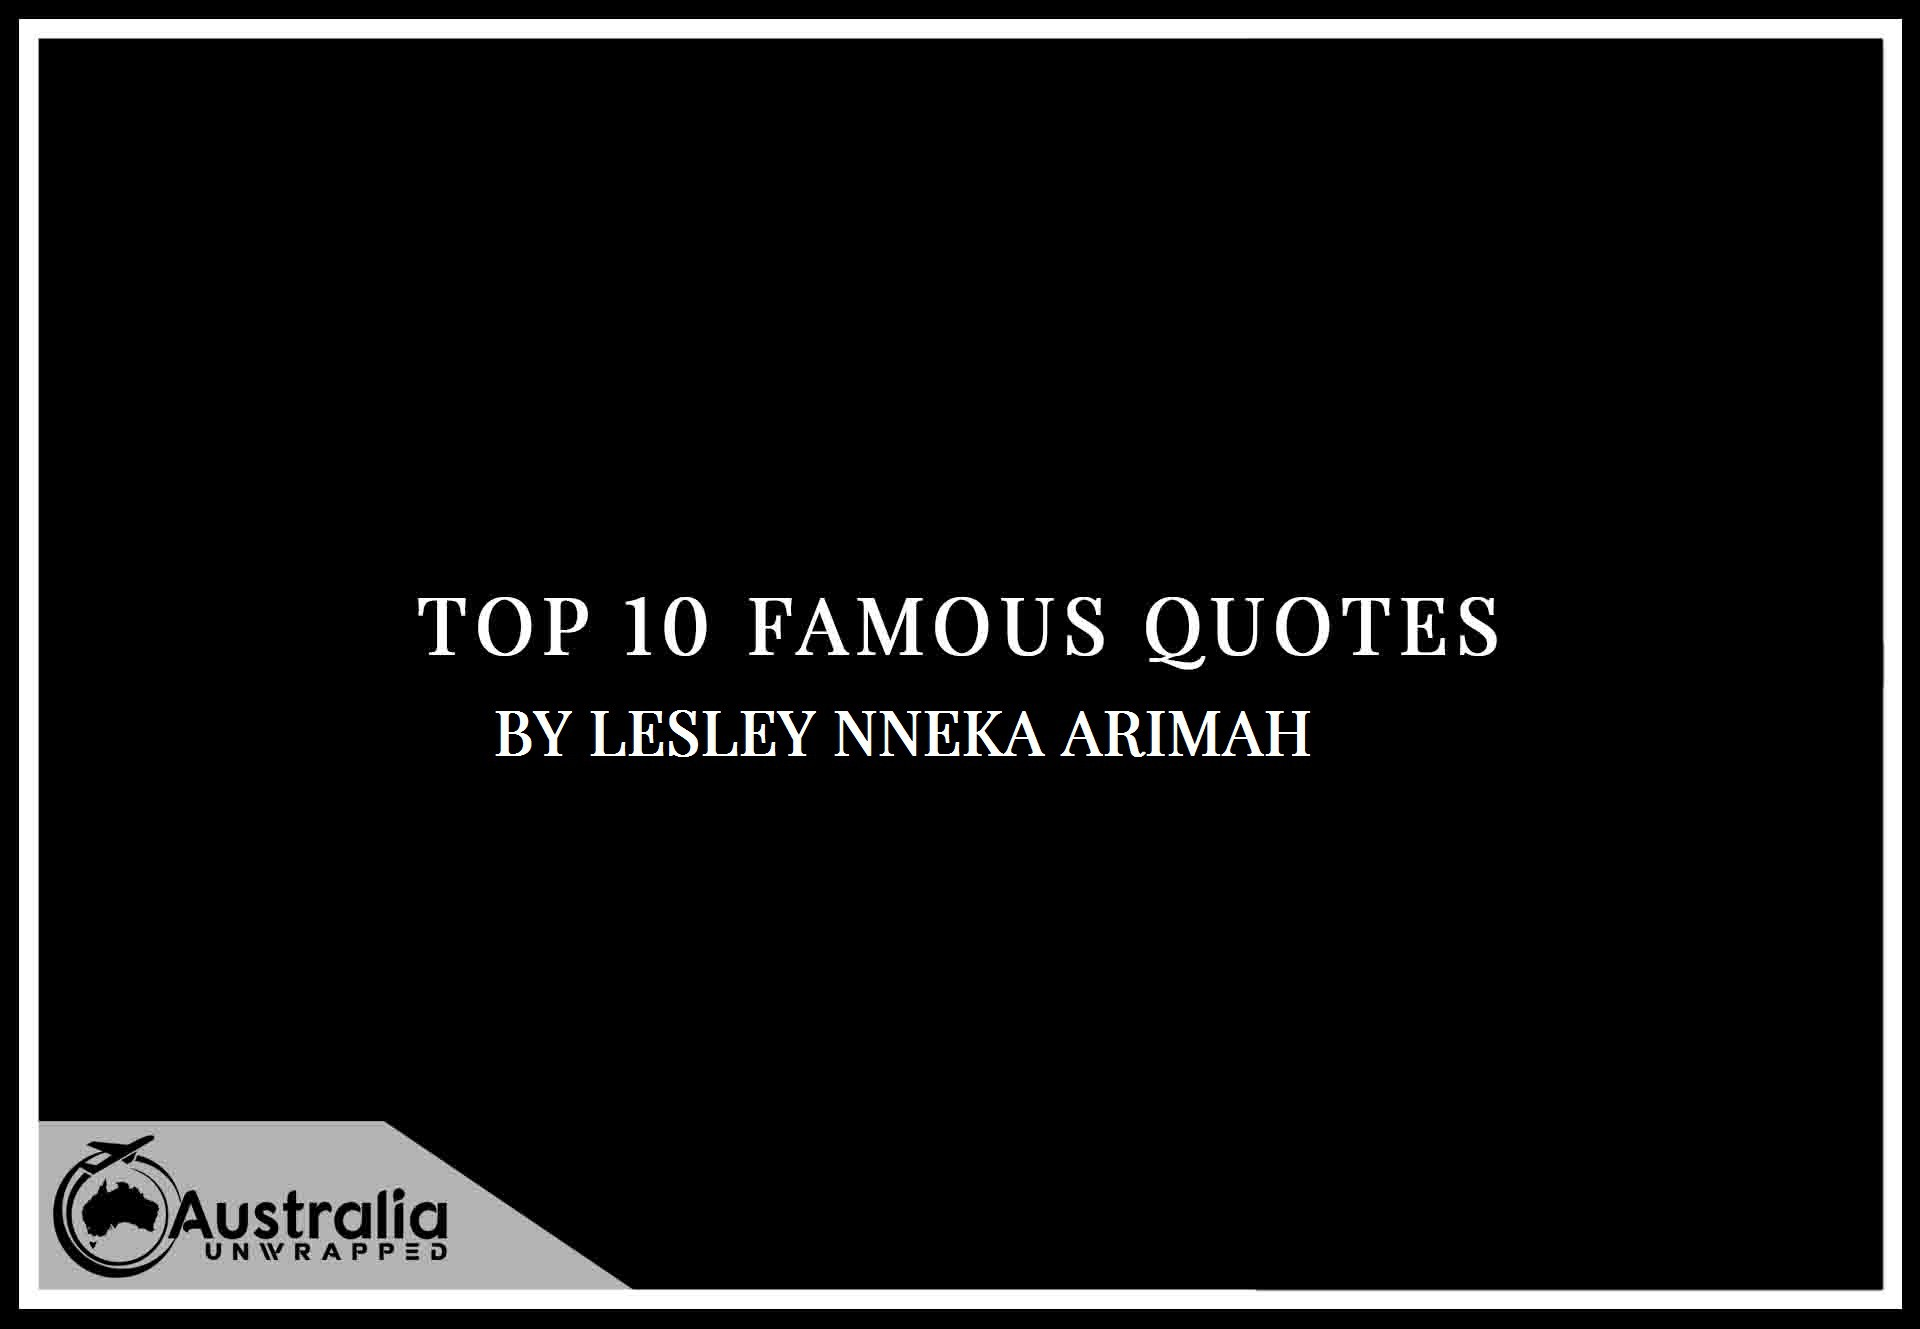 Lesley Nneka Arimah's Top 10 Popular and Famous Quotes